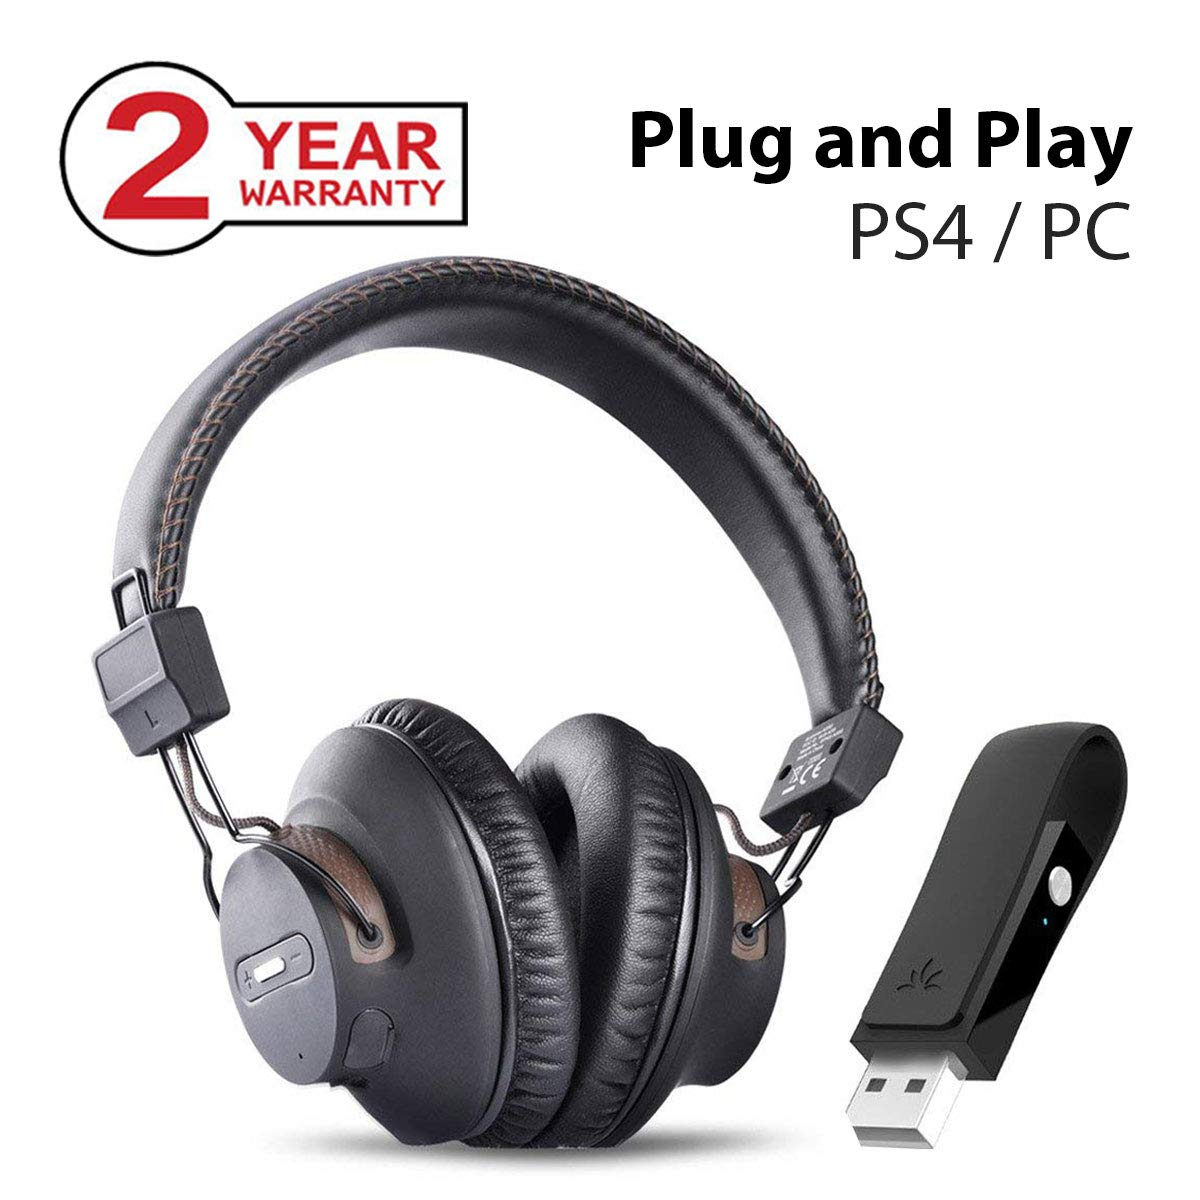 Avantree DG59 Auriculares Inalámbricos PS4 Gaming con Bluetooth USB Transmisor de Audio para PC, Ordenador de Sobremesa, Plug and Play, Llamadas y Música ...